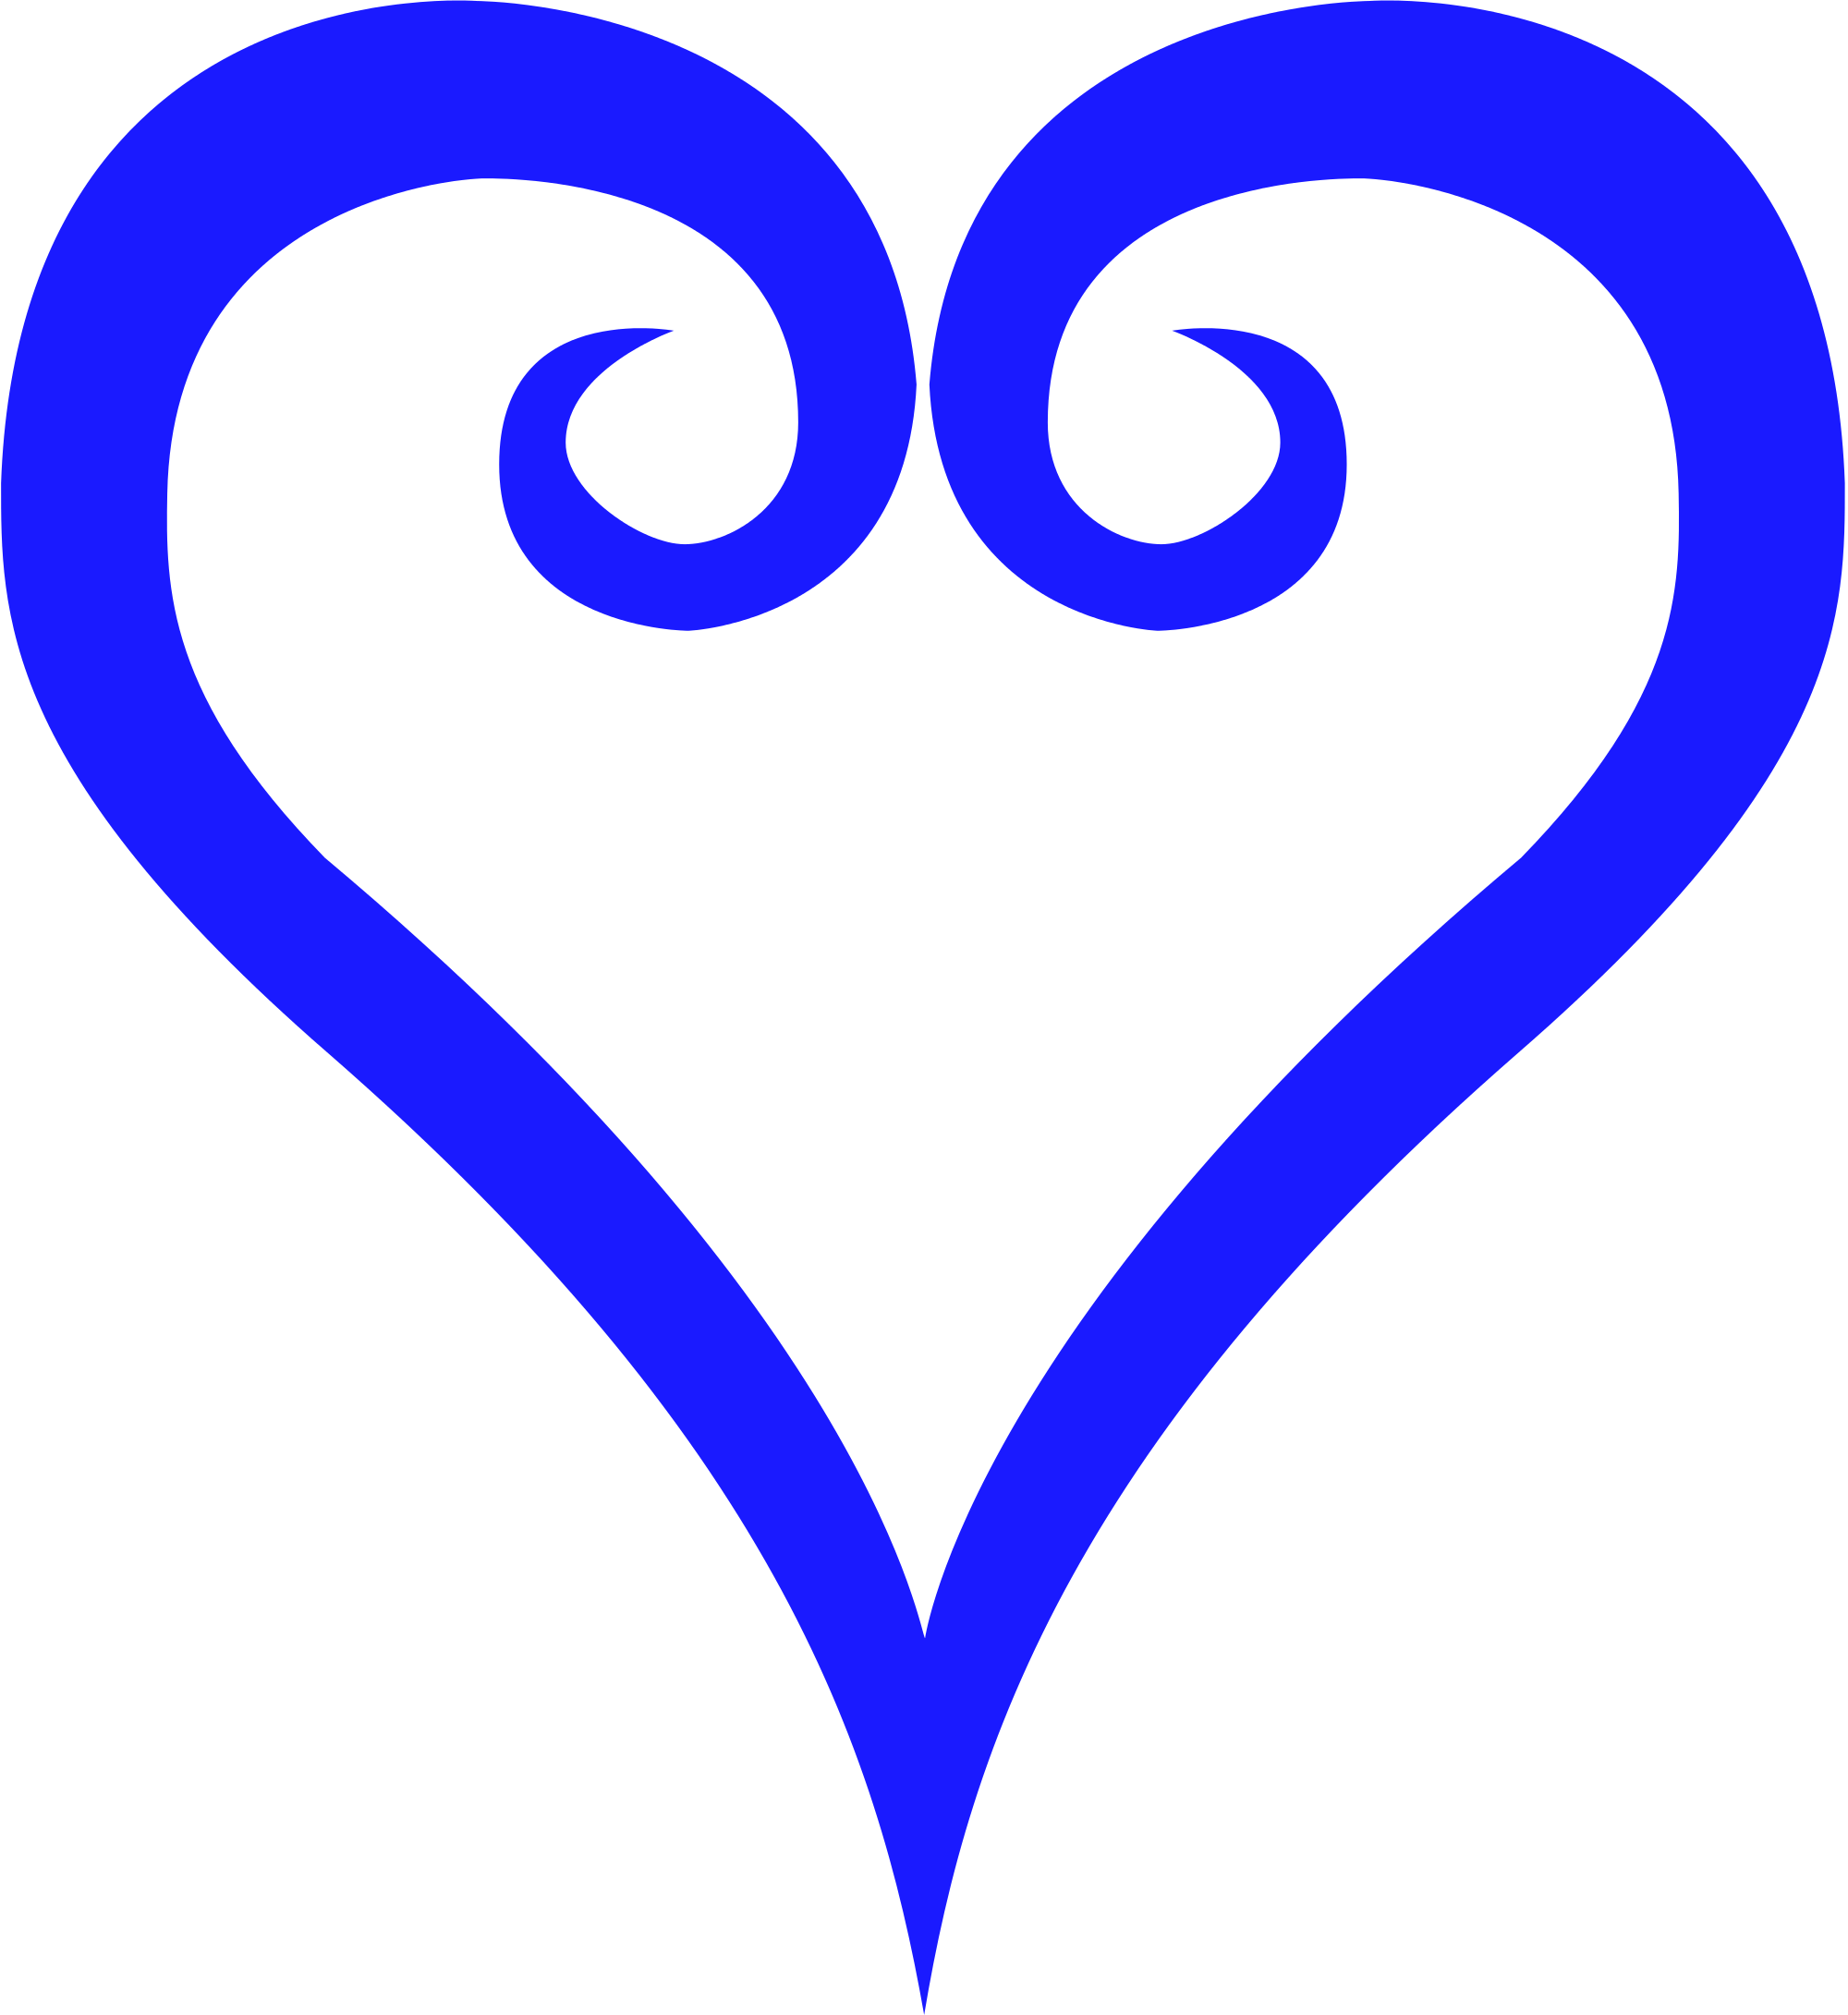 Open PlusPng.com  - Kingdom Hearts PNG